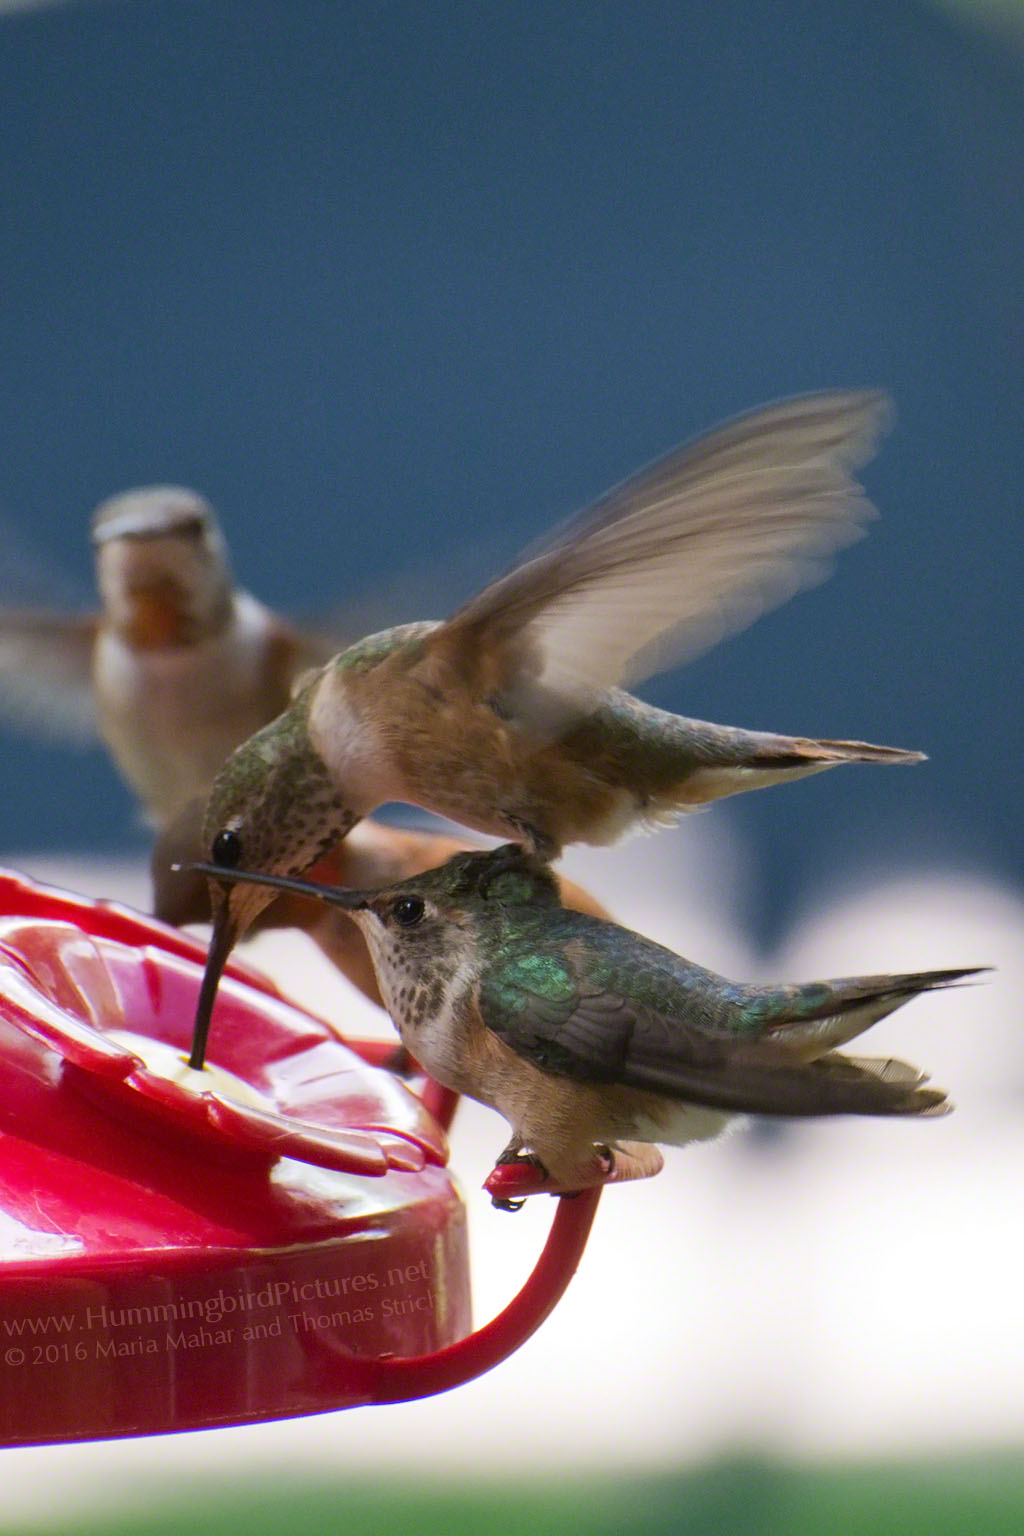 A perched hummingbird crouches while a hovering hummingbird balances on its head to reach the feeder